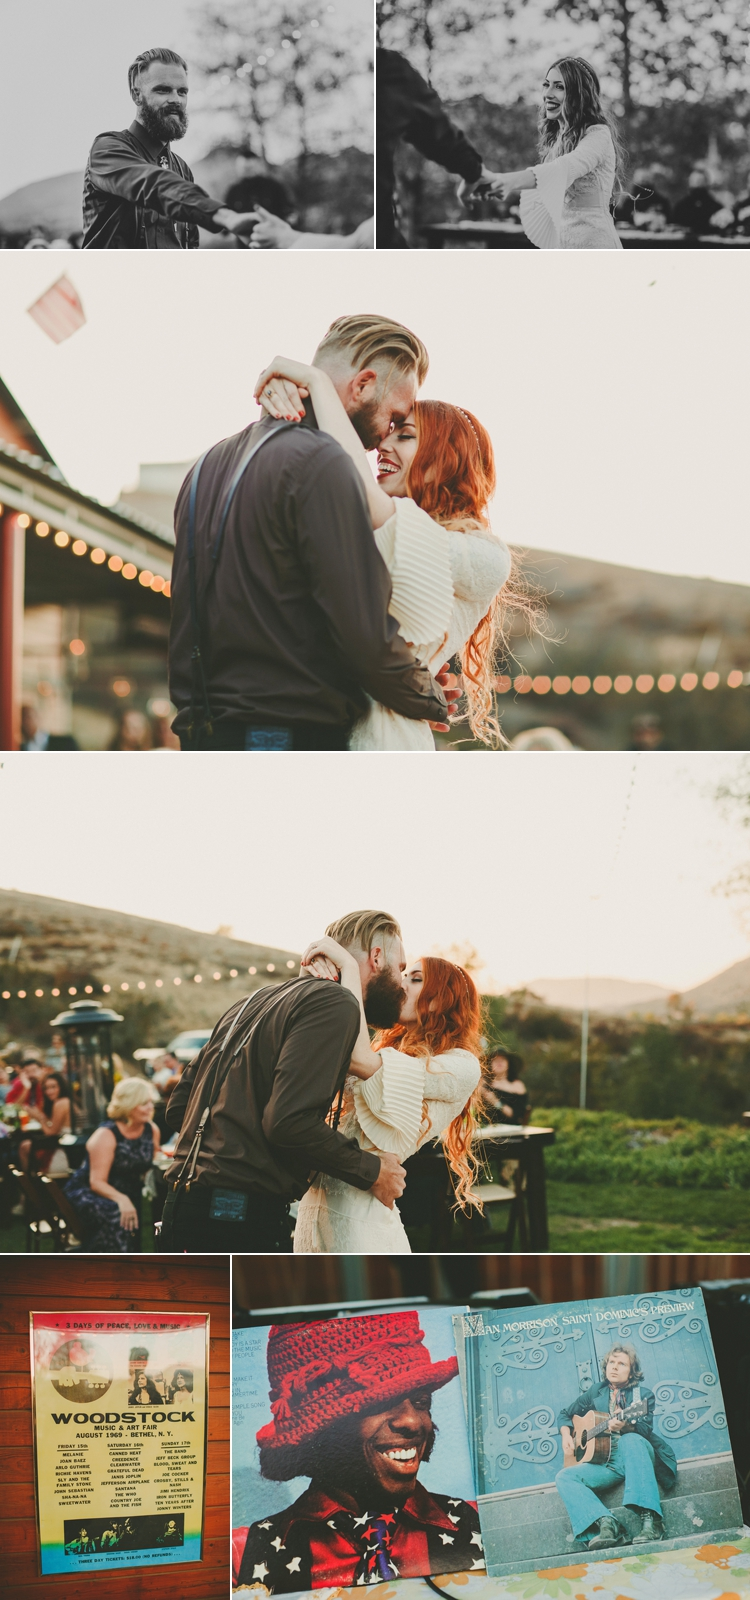 woodstock-inspired-wedding-photos-30